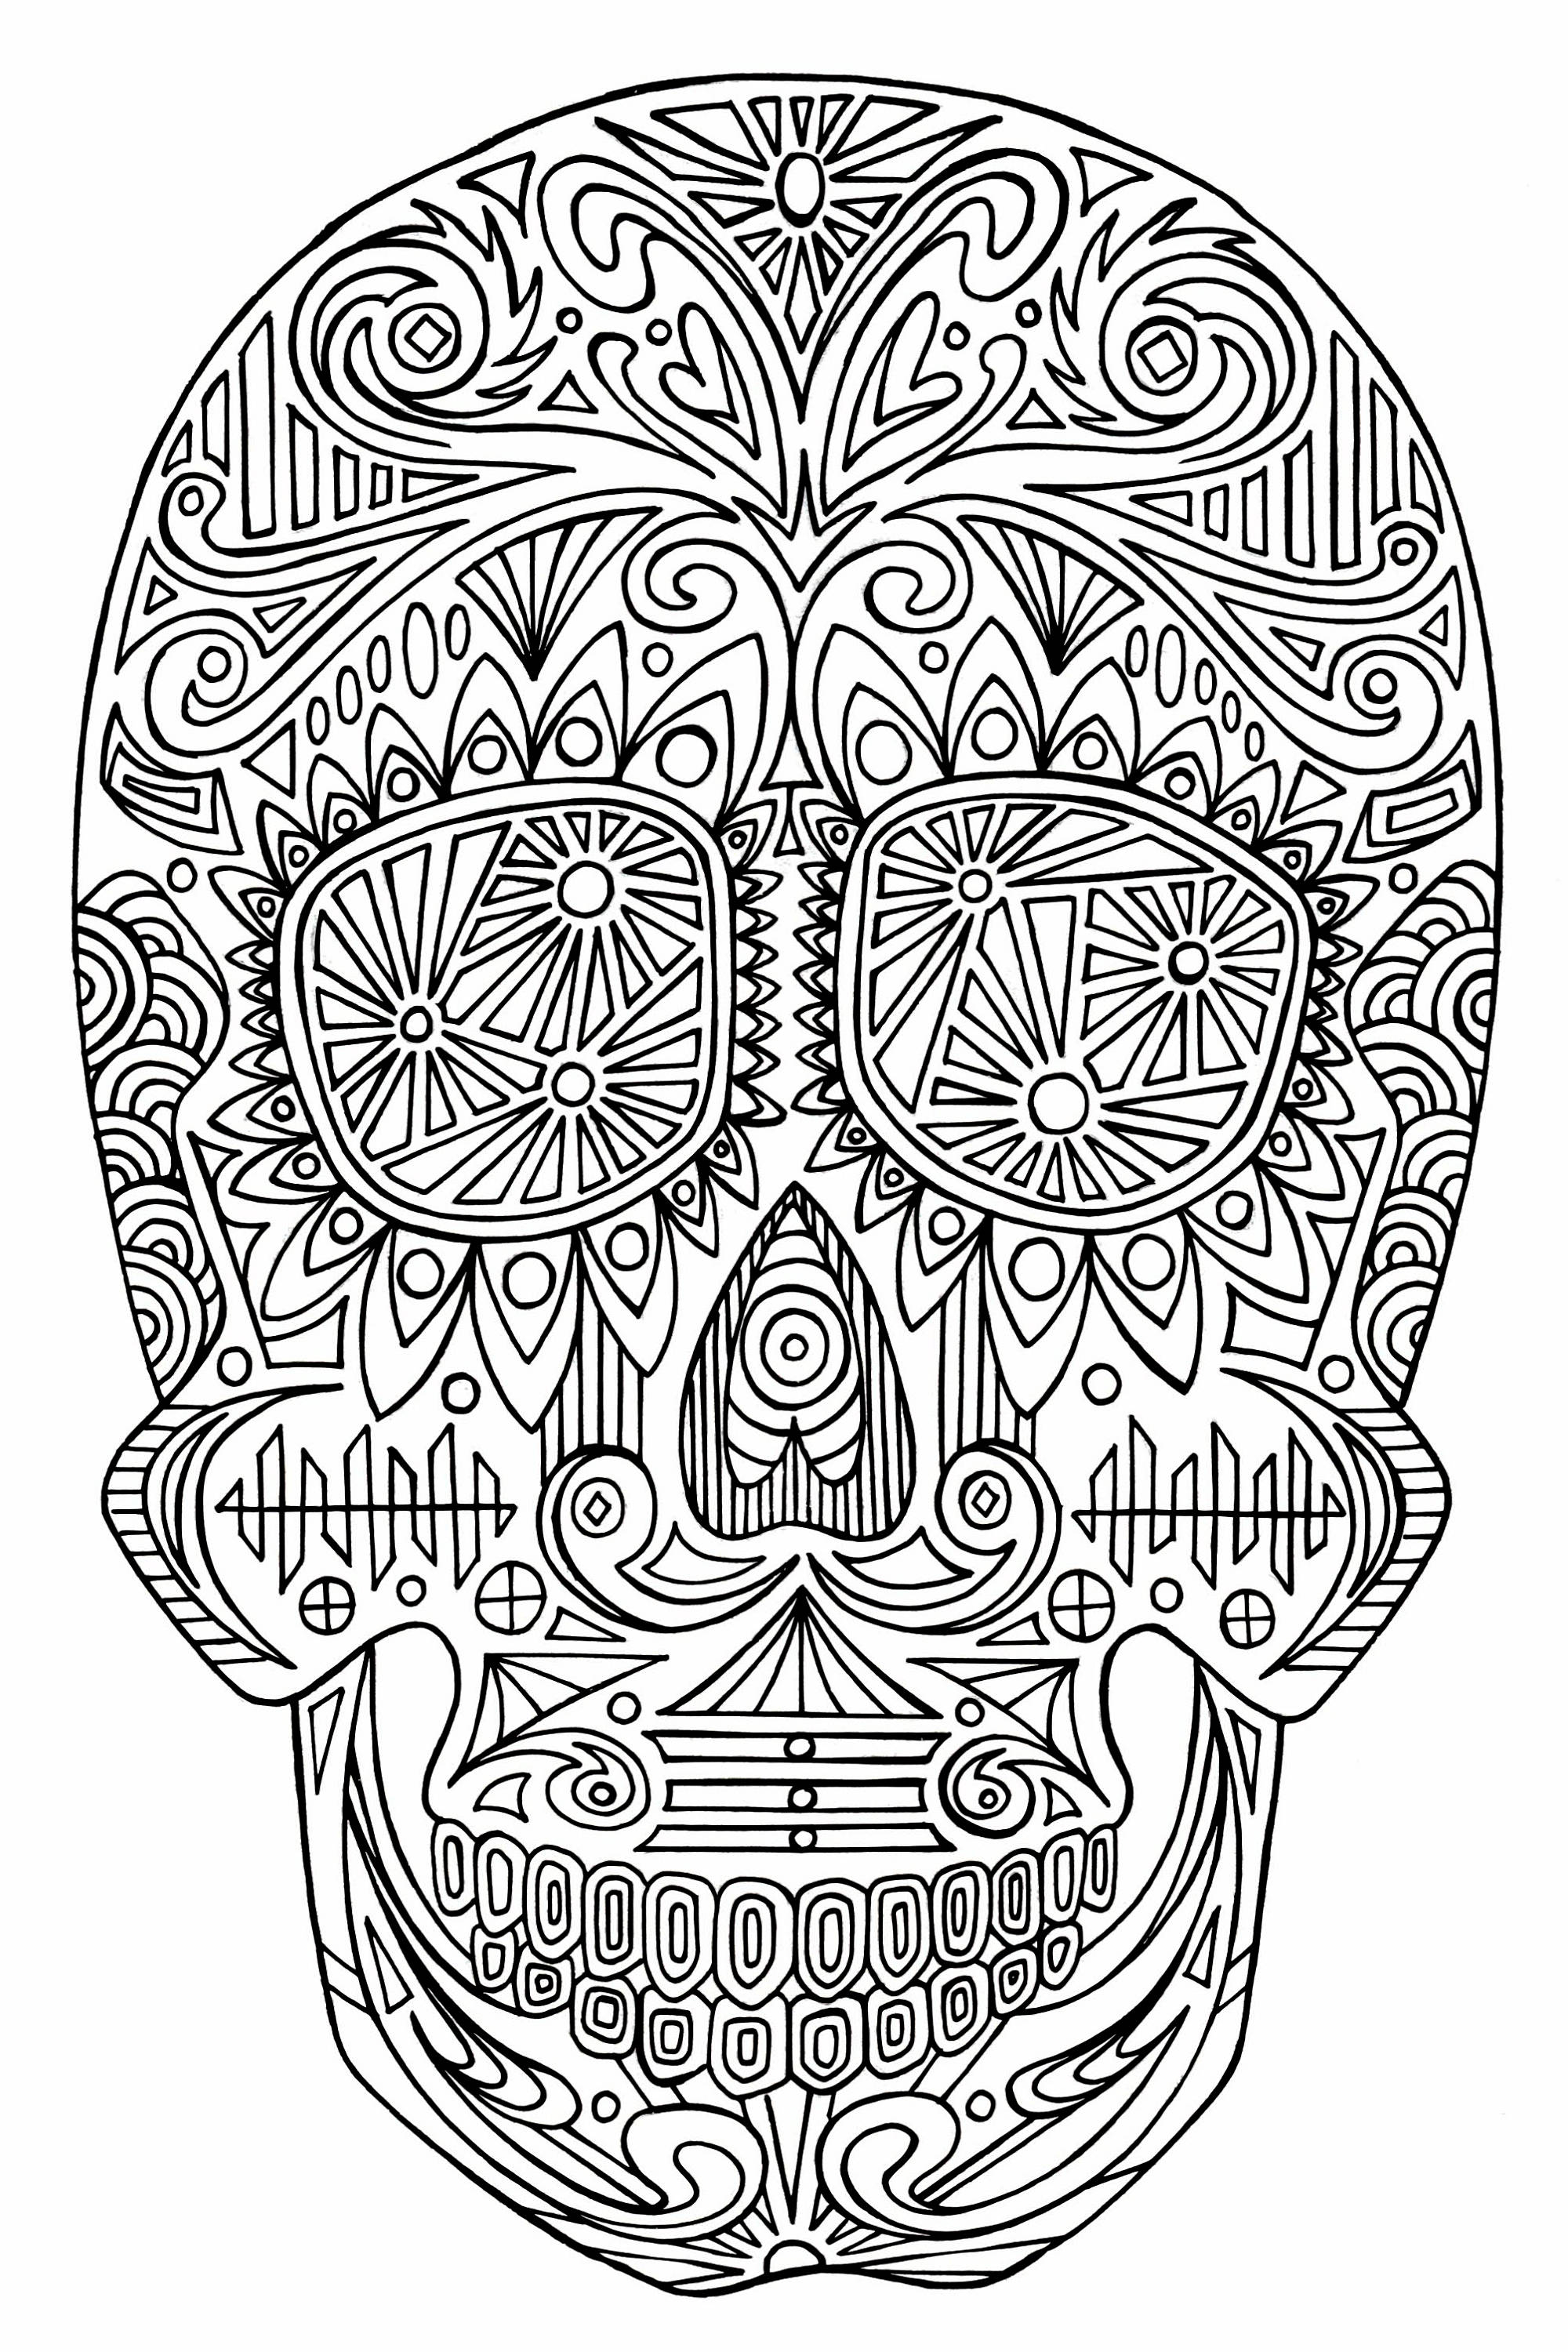 Intricate Sugar Skull Coloring Page